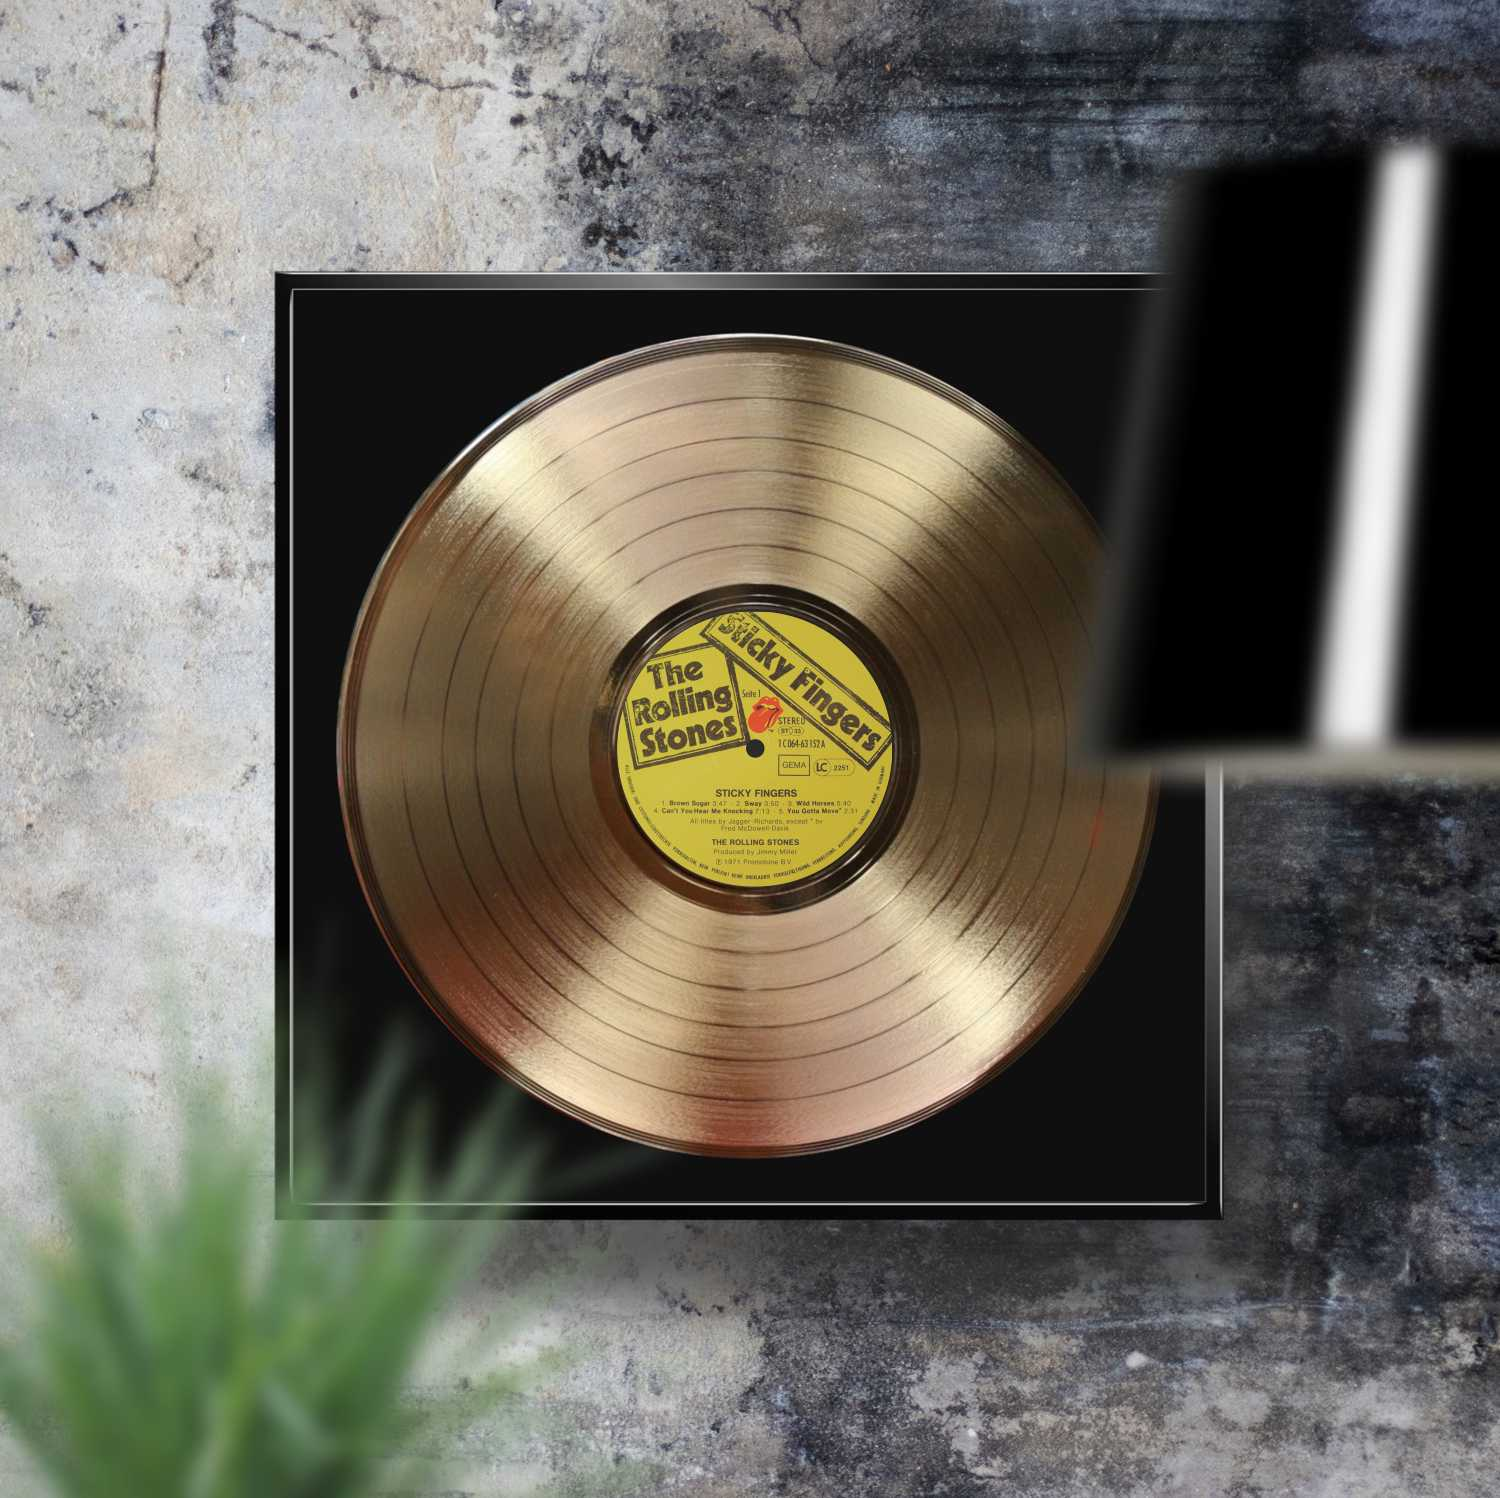 ROLLING STONES - STICKY FINGERS: FRAMED GOLD PLATED VINYL RECORD